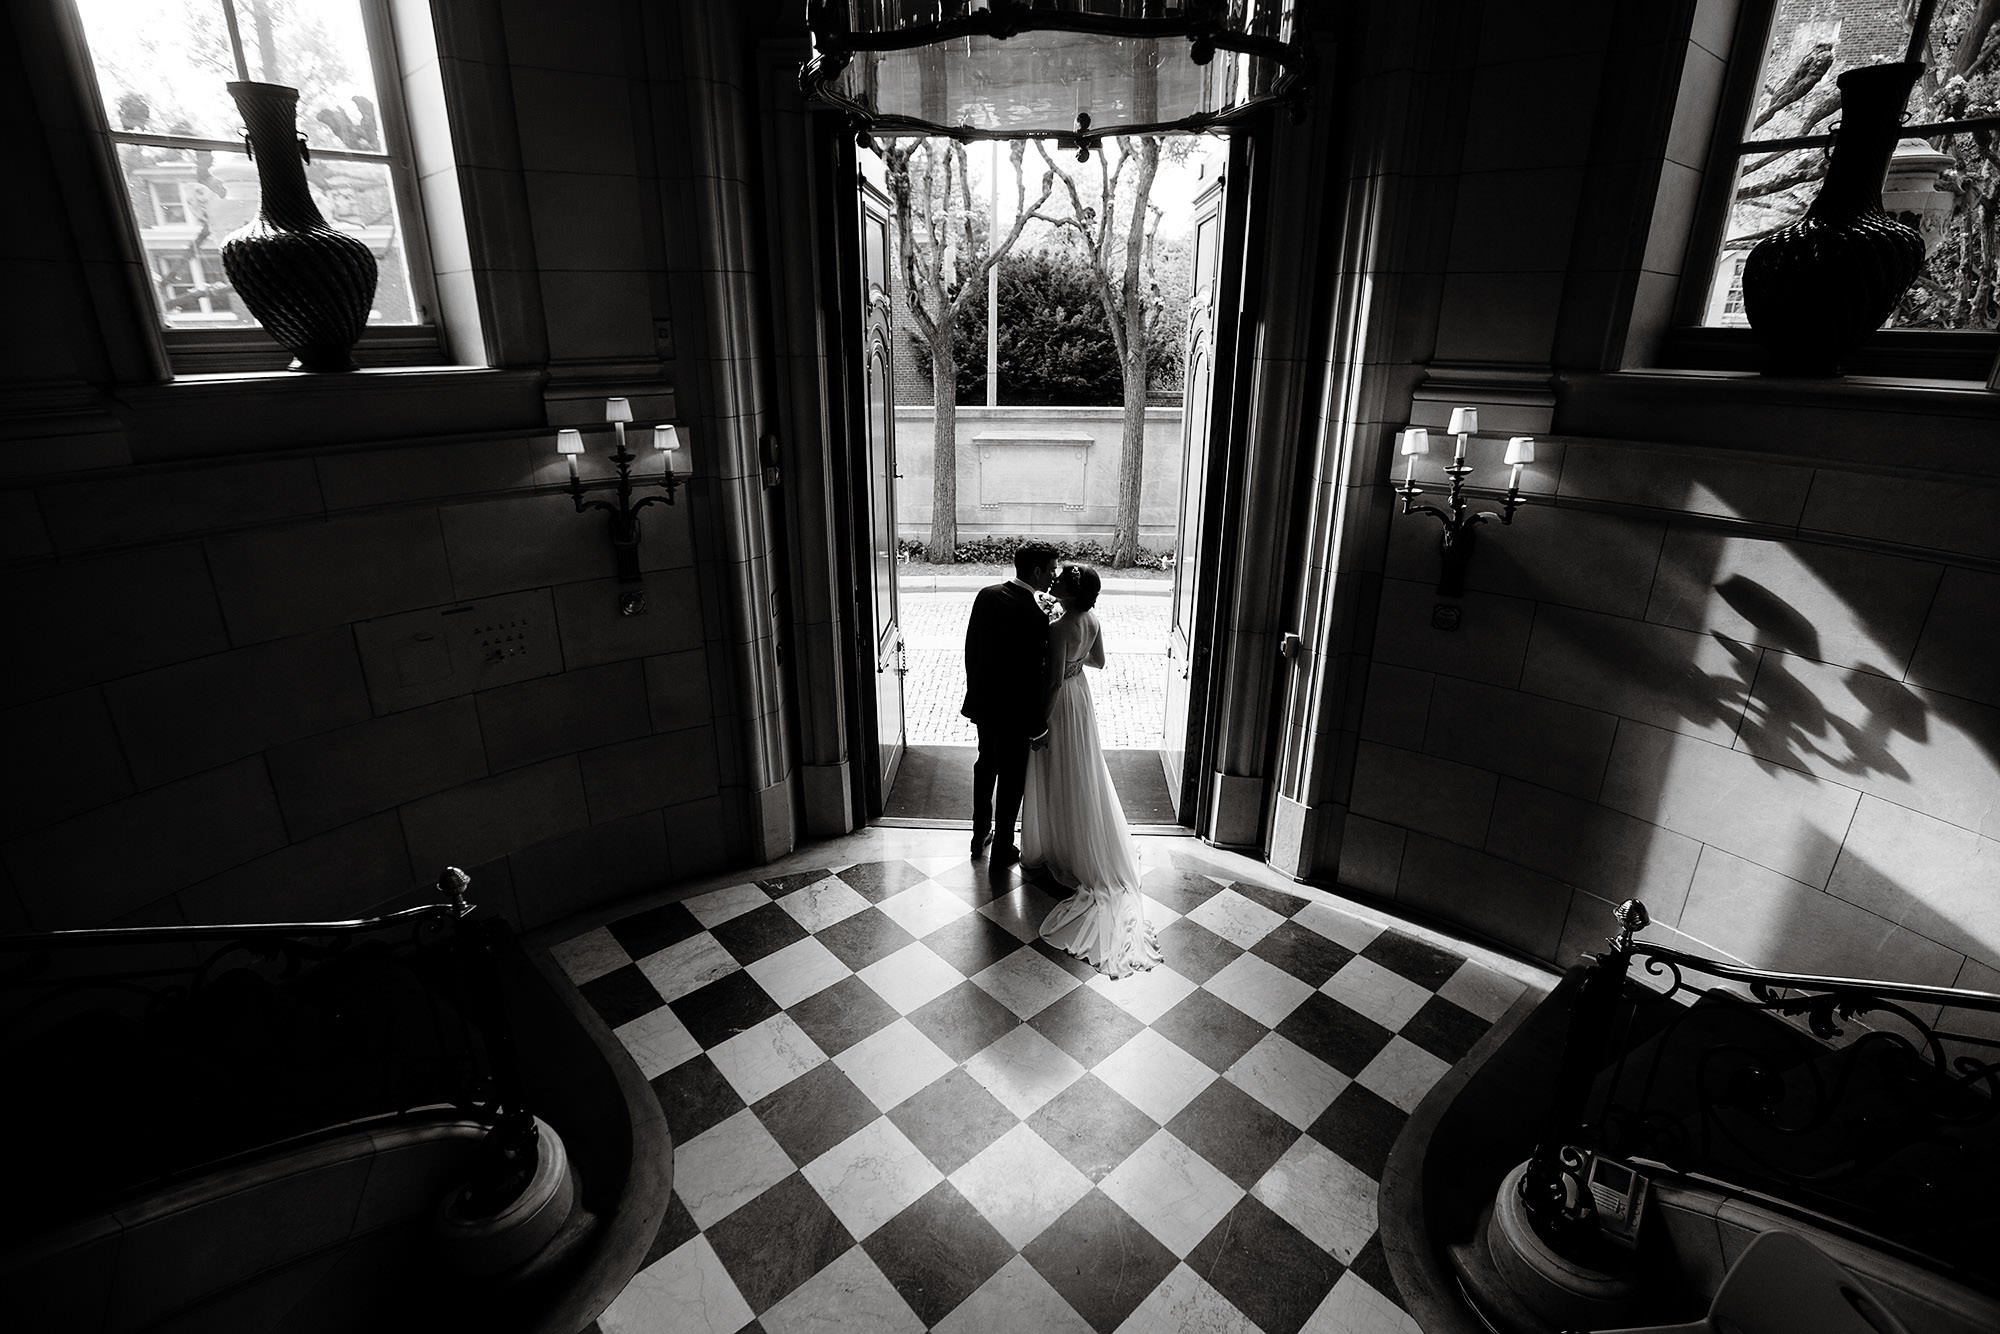 A portrait of the bride and groom at Meridian House.